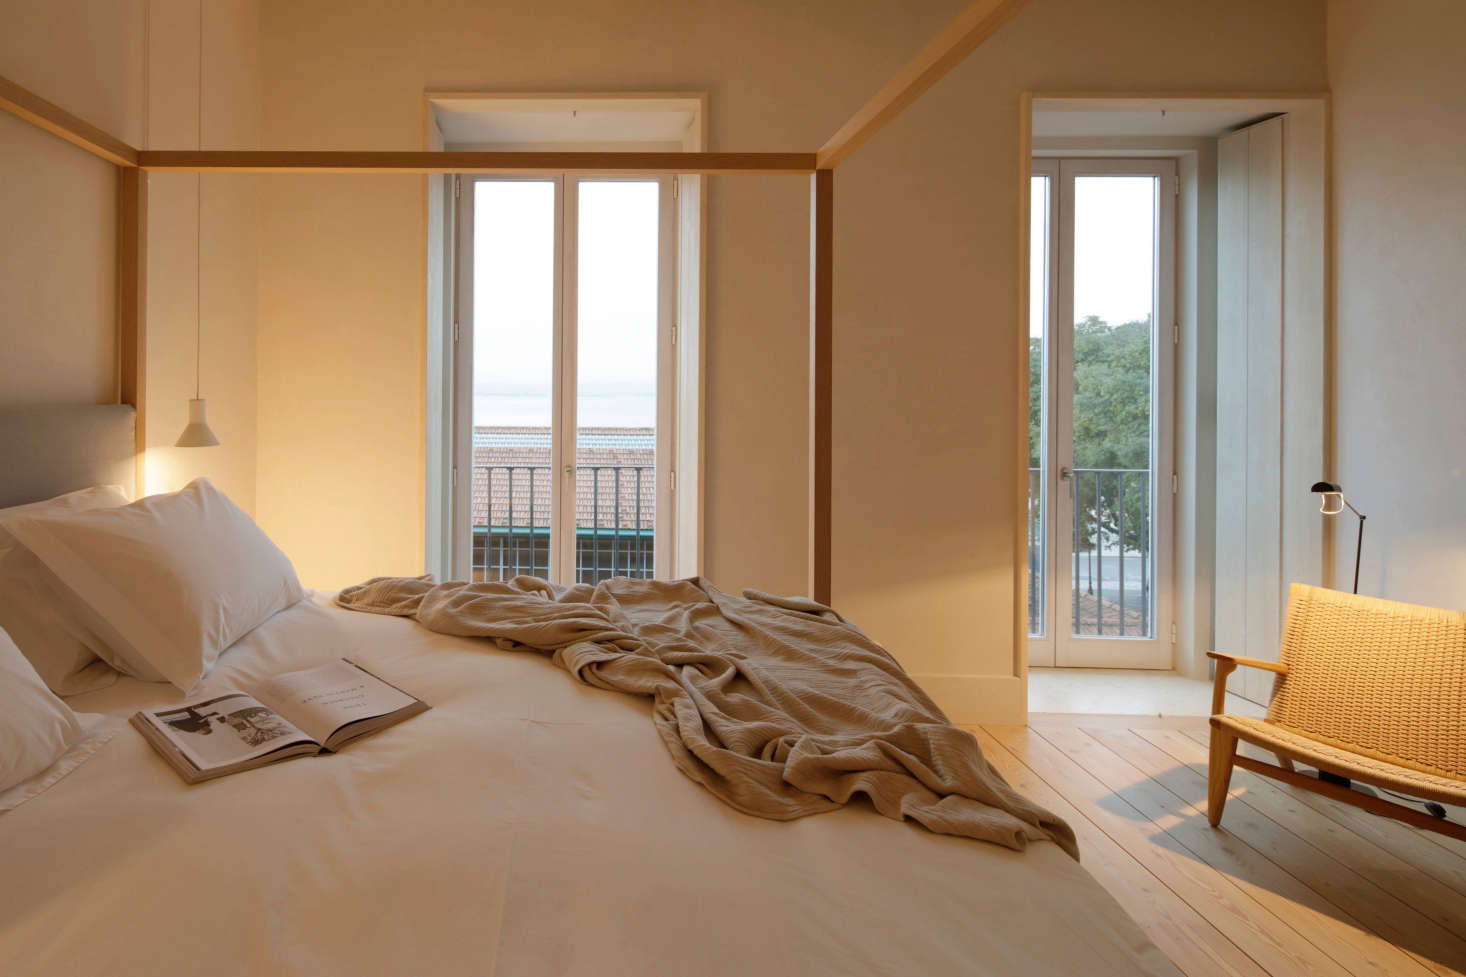 The four-poster beds are byMaxalto from B&B Italia, the cotton-linen mattresses are by Alma Natura, and the pillows and blankets are made locally. A CH25 Lounge Chair by Carl Hansen sits in the corner.